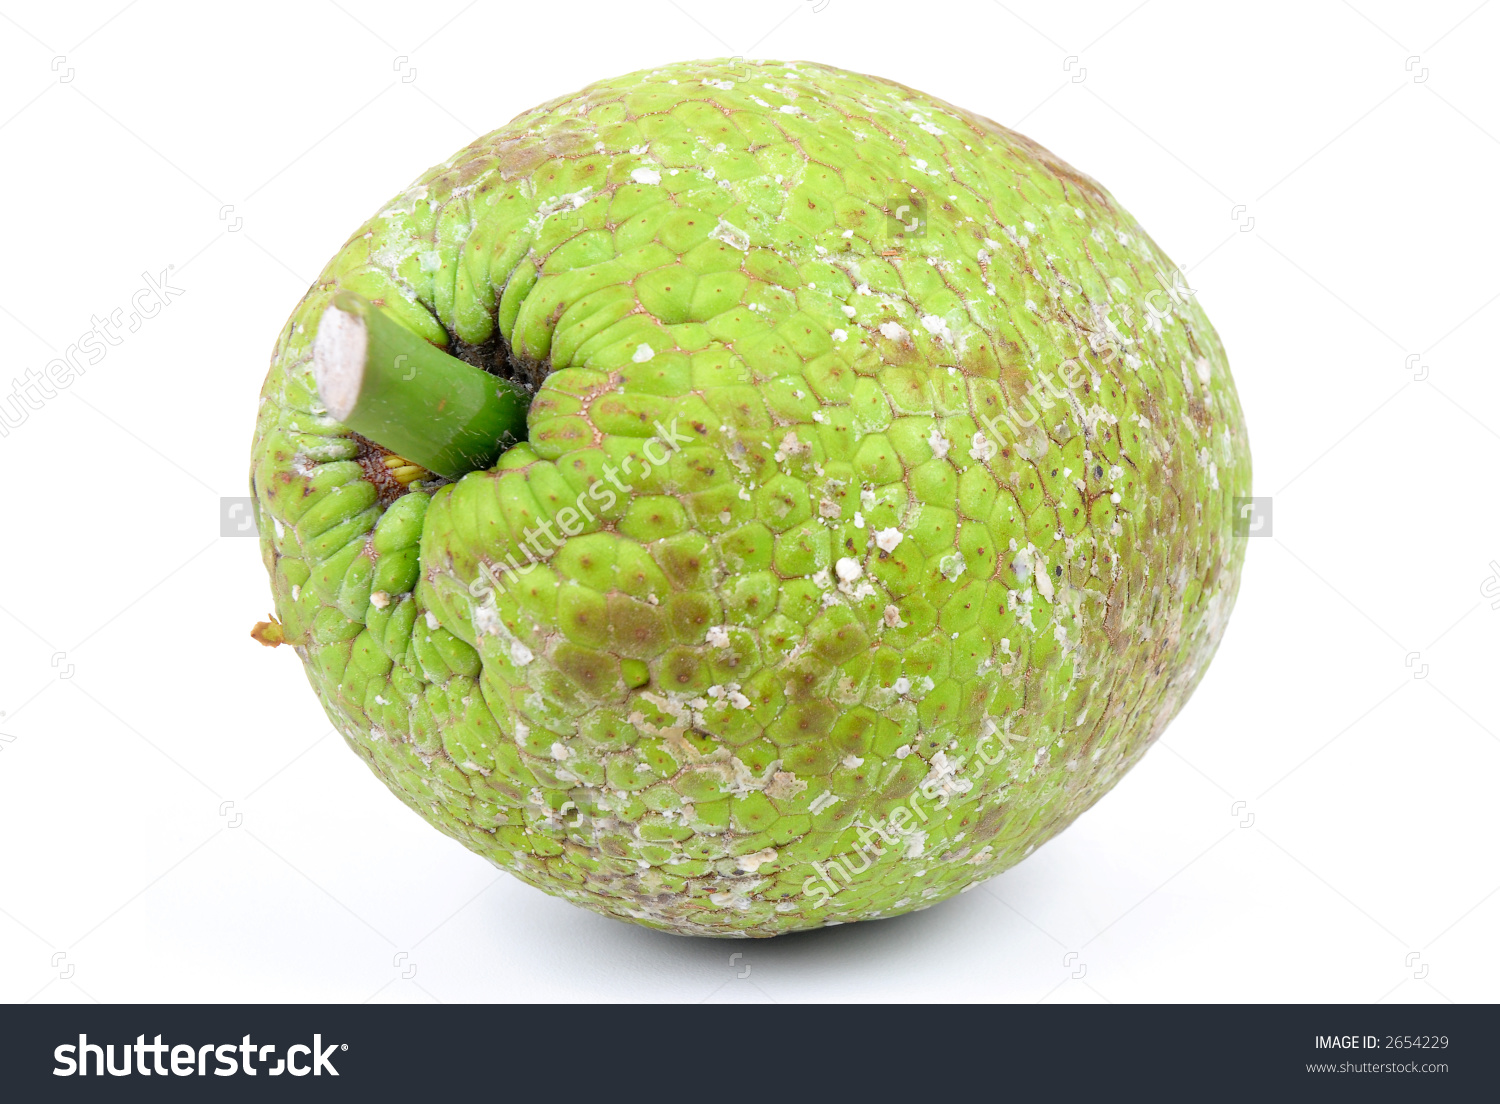 Breadfruit Artocarpus Altilis Over White Background Stock Photo.